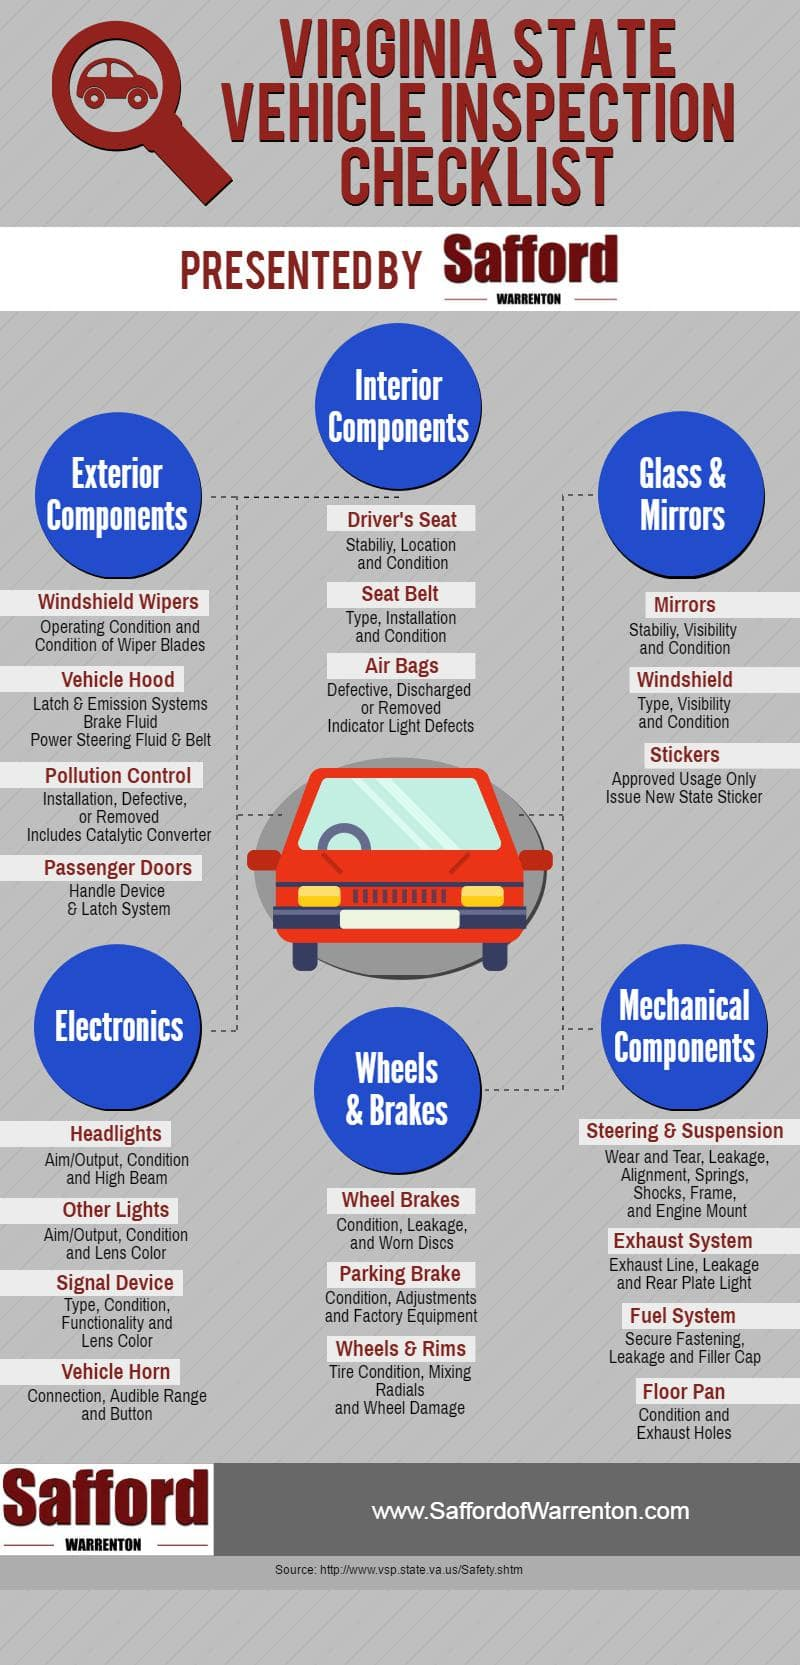 Virginia Vehicle Safety Inspection Checklist Safford Of Warrenton